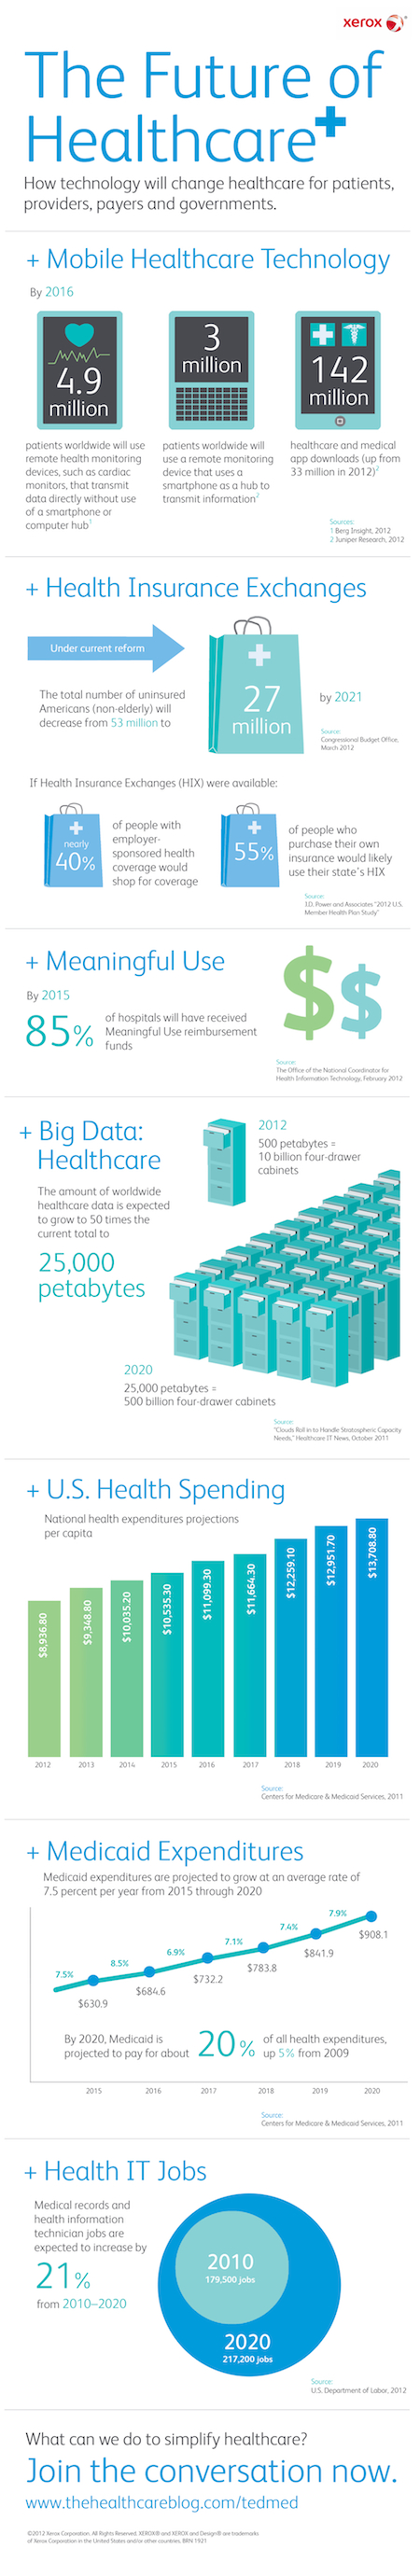 Future of Healthcare infographic